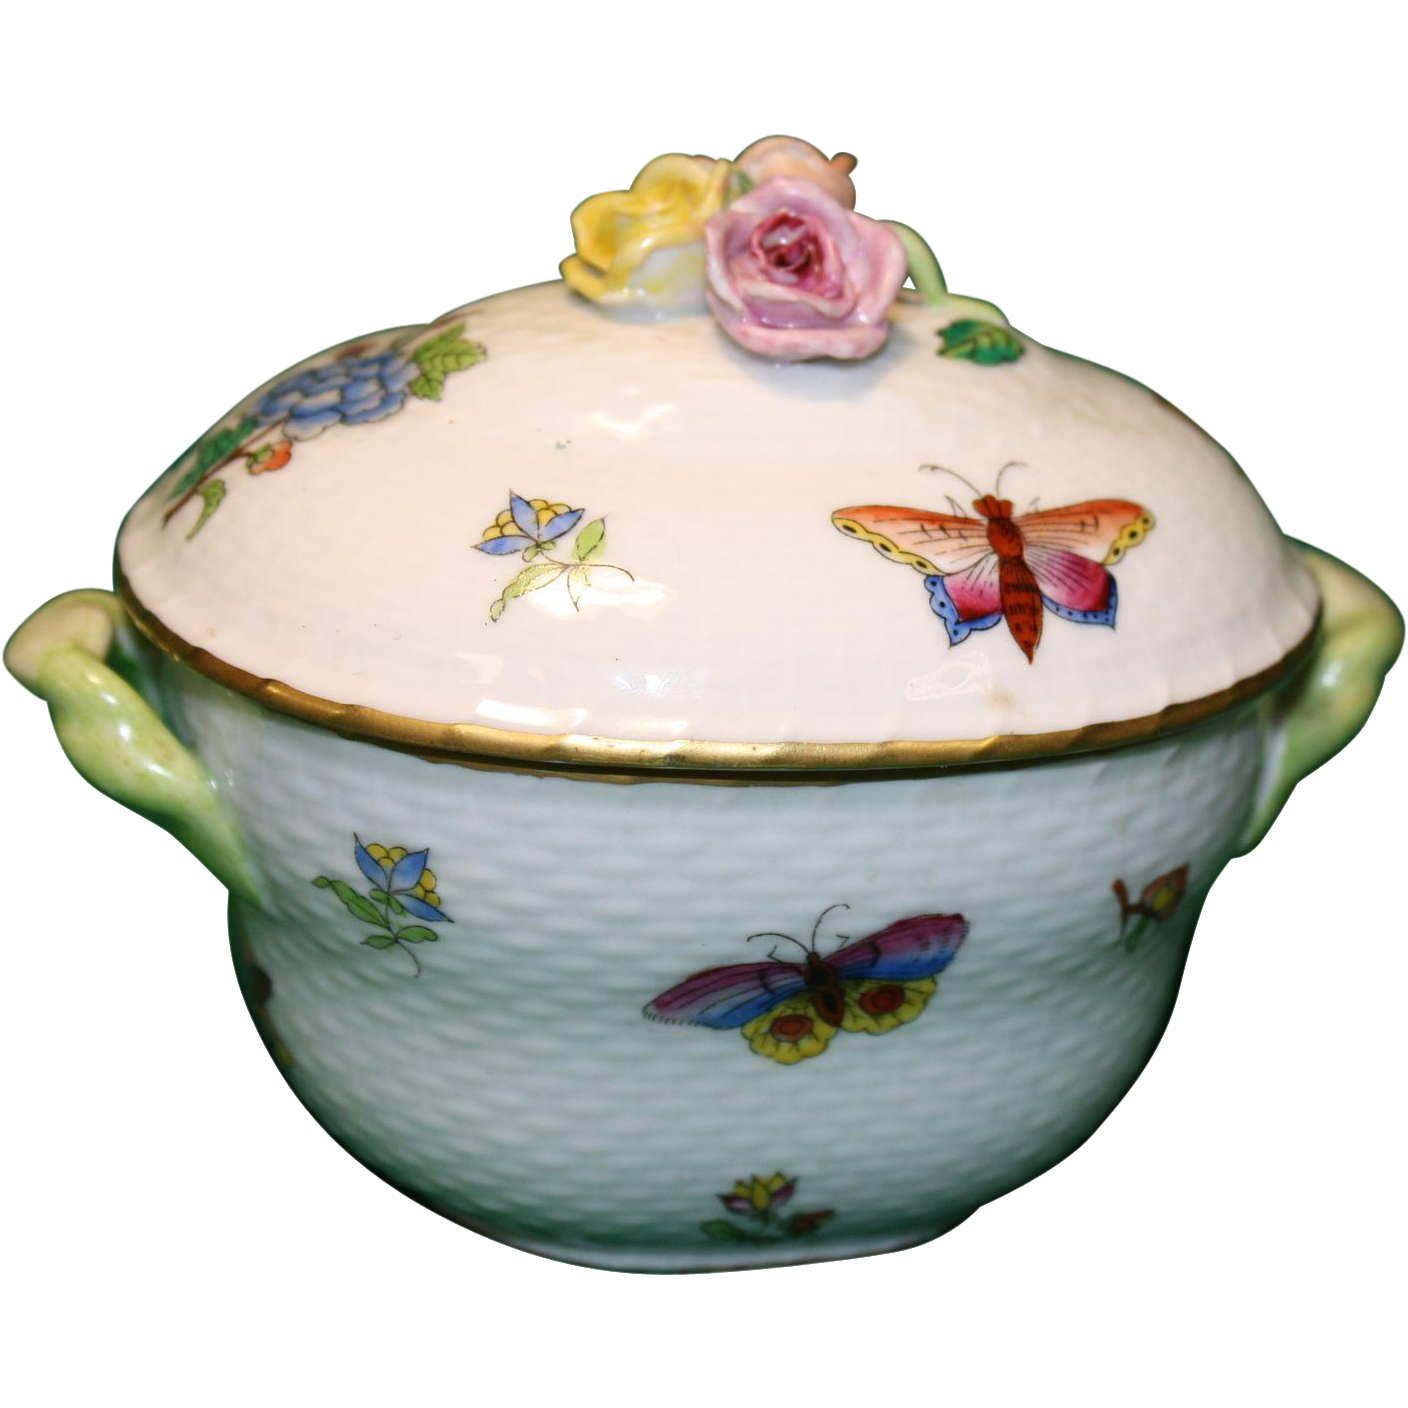 Herend Queen Victoria Sugar Bowl 1840-50's Fine Porcelain